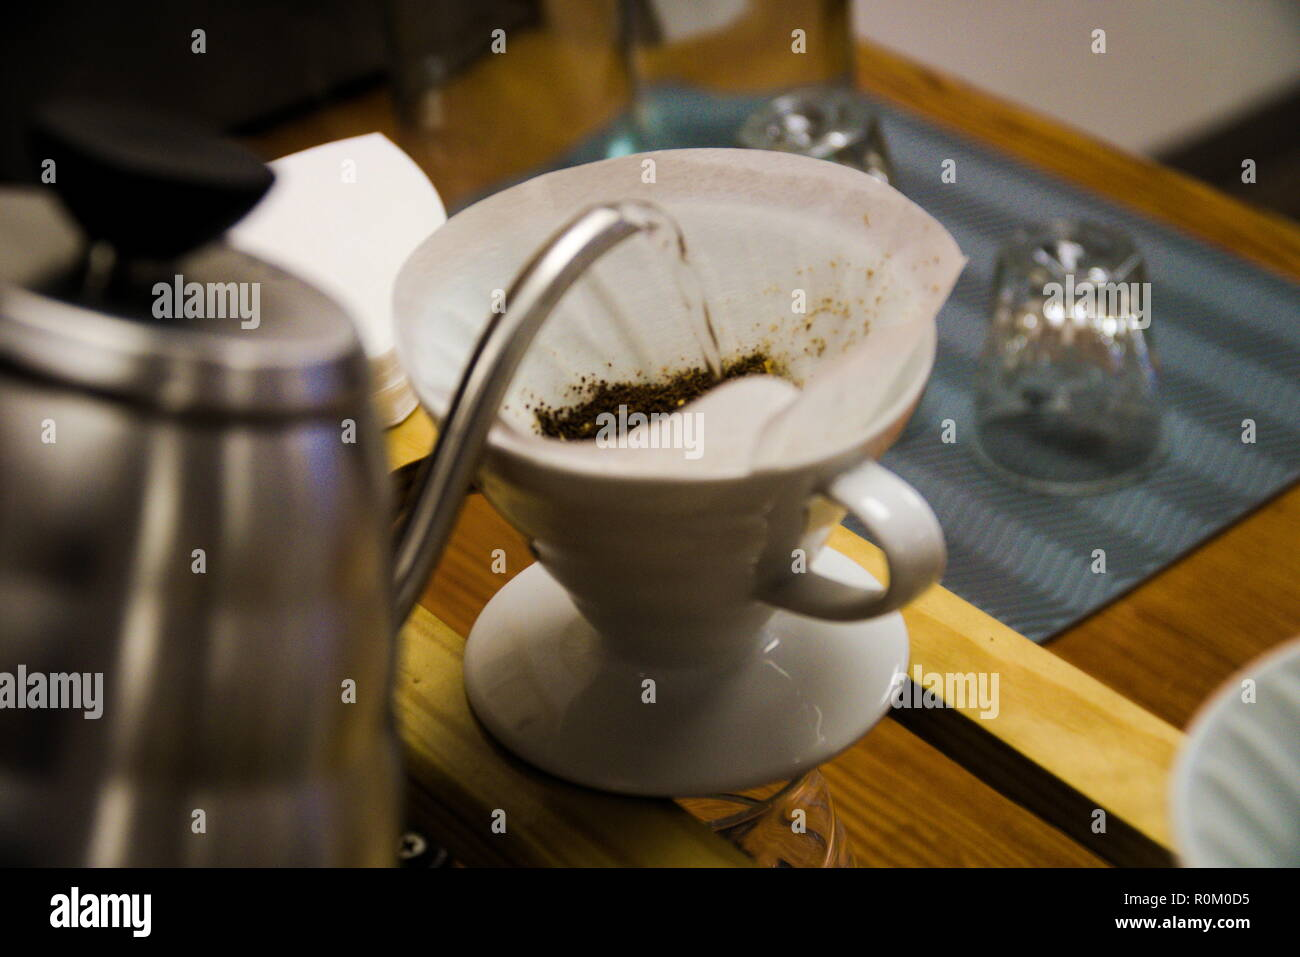 Water from a kettle is poured into a coffee filter in a mug with coffee grounds in it. The barista is making a pour over coffee. - Stock Image